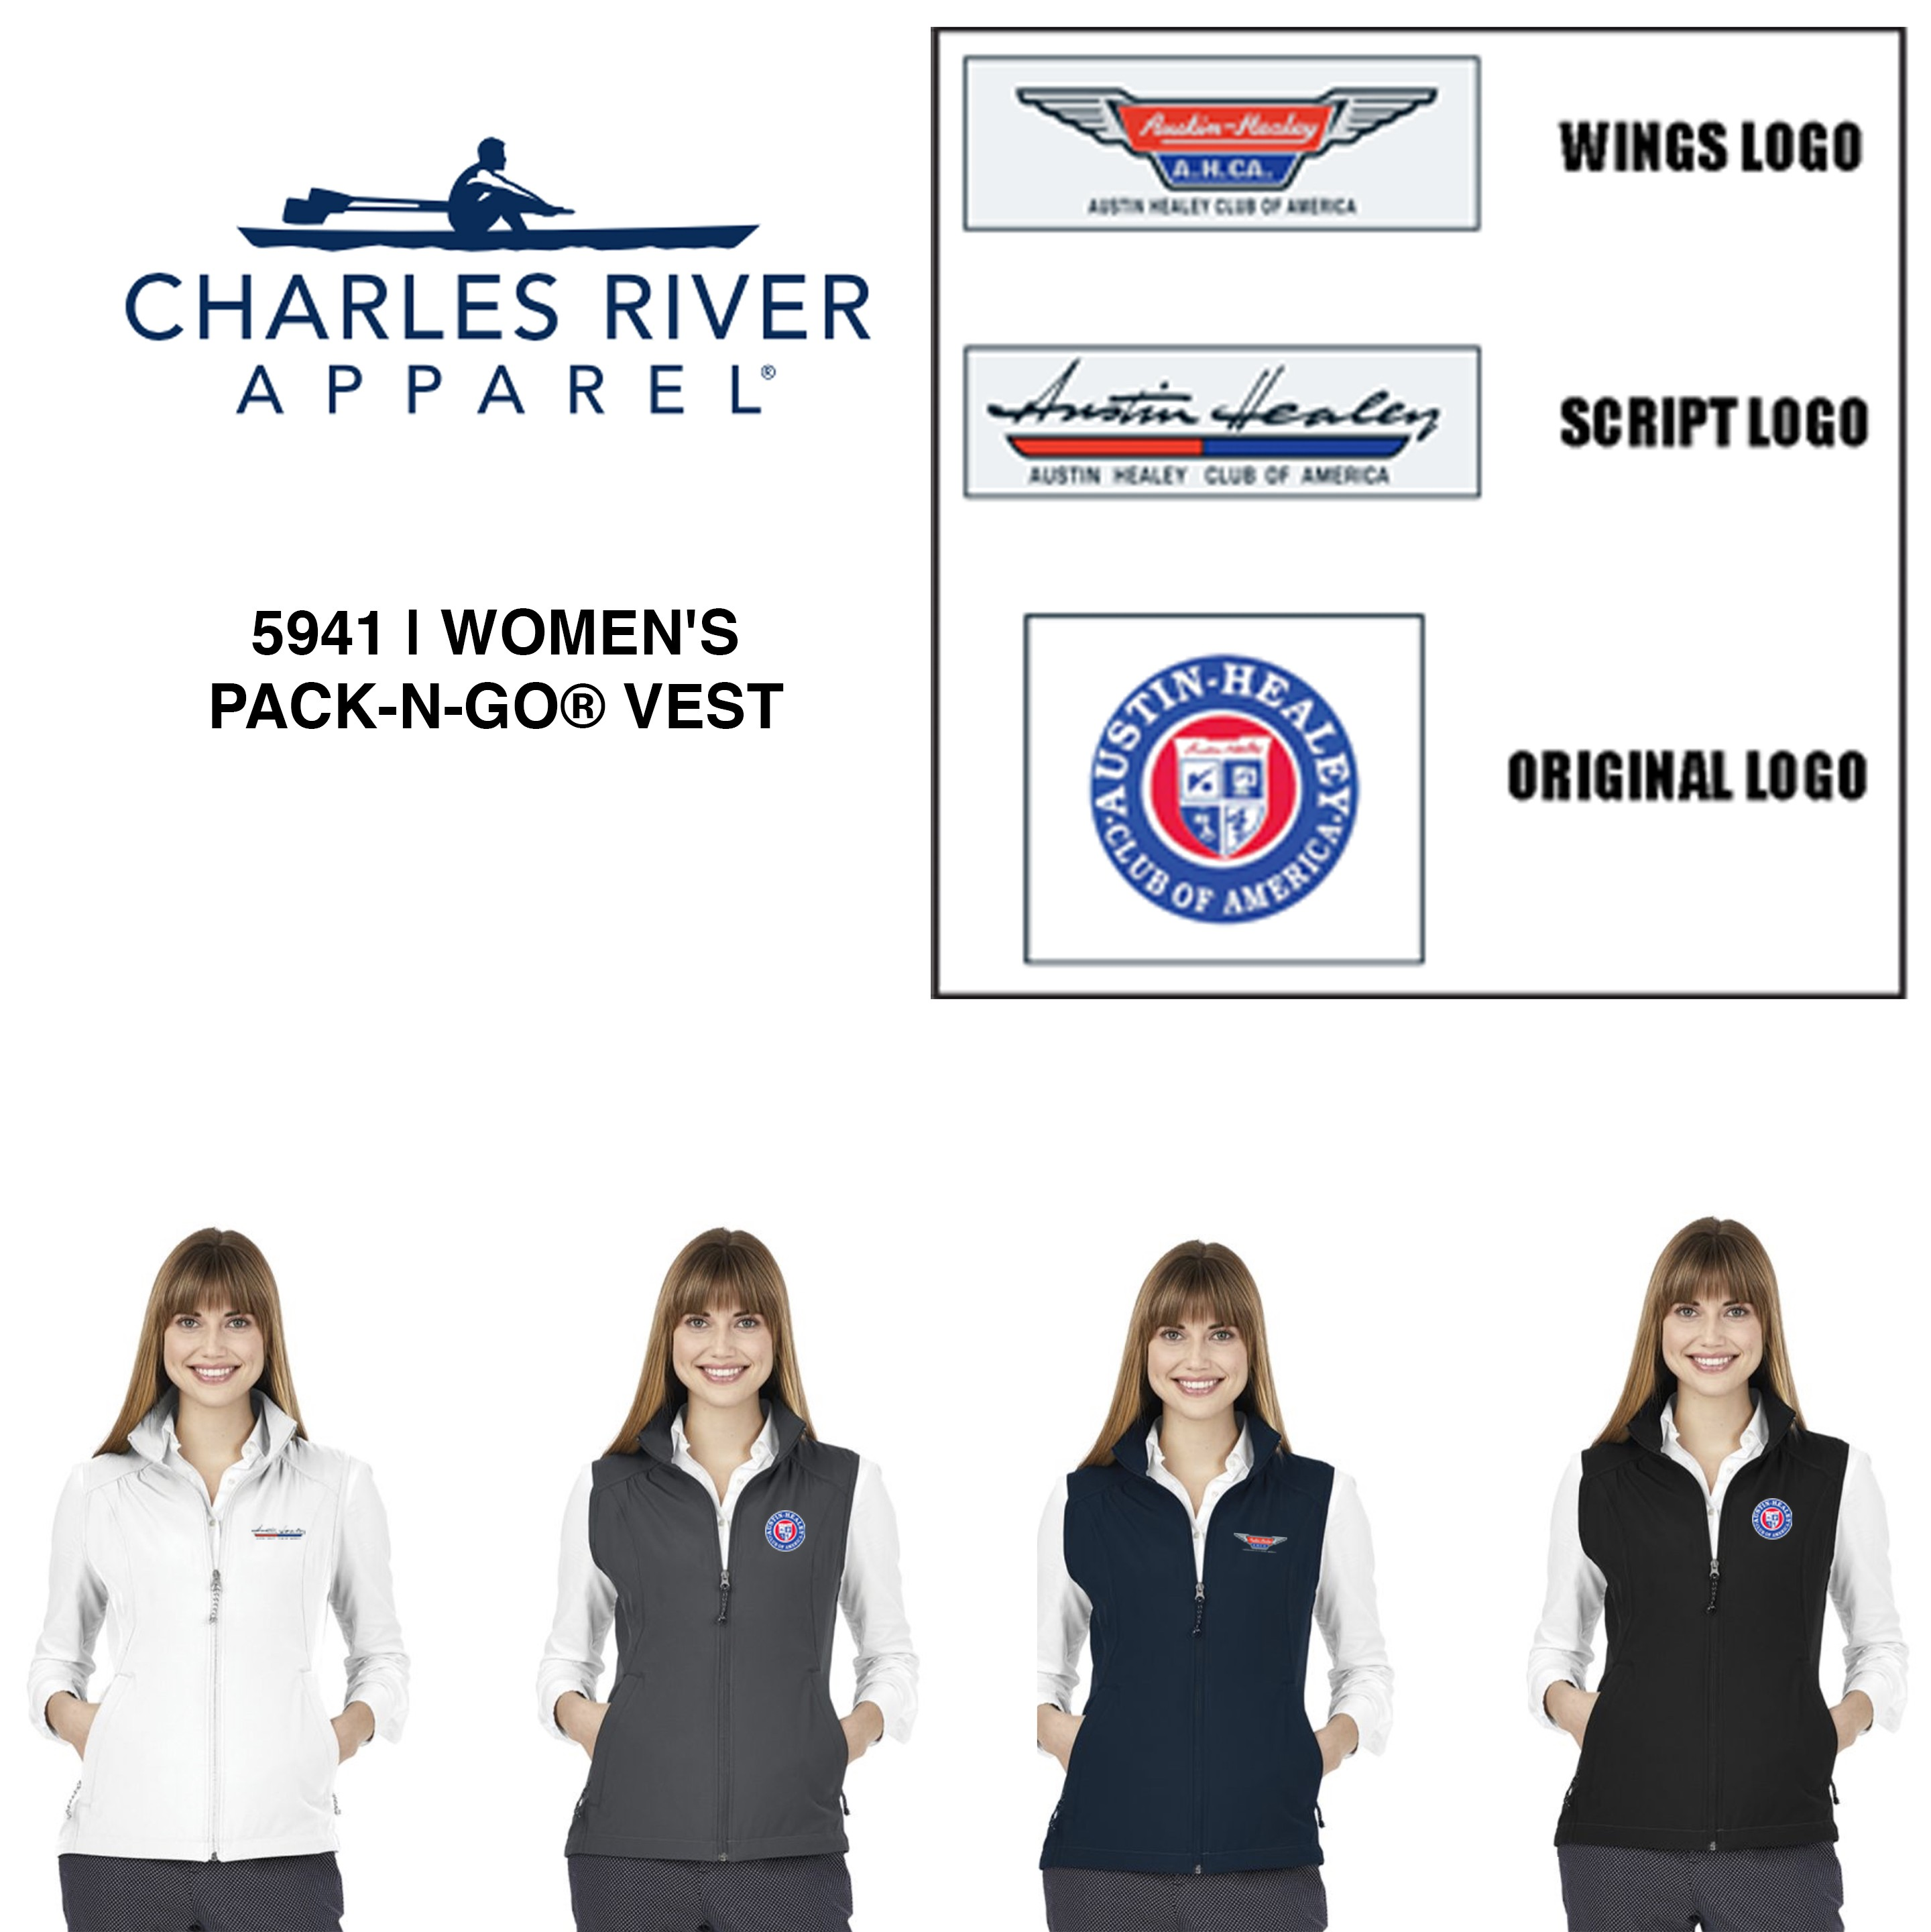 AHCA STEP- UP PROGRAM: Charles River Brand Woman's Pack-N-Go® Vest, Style #5141